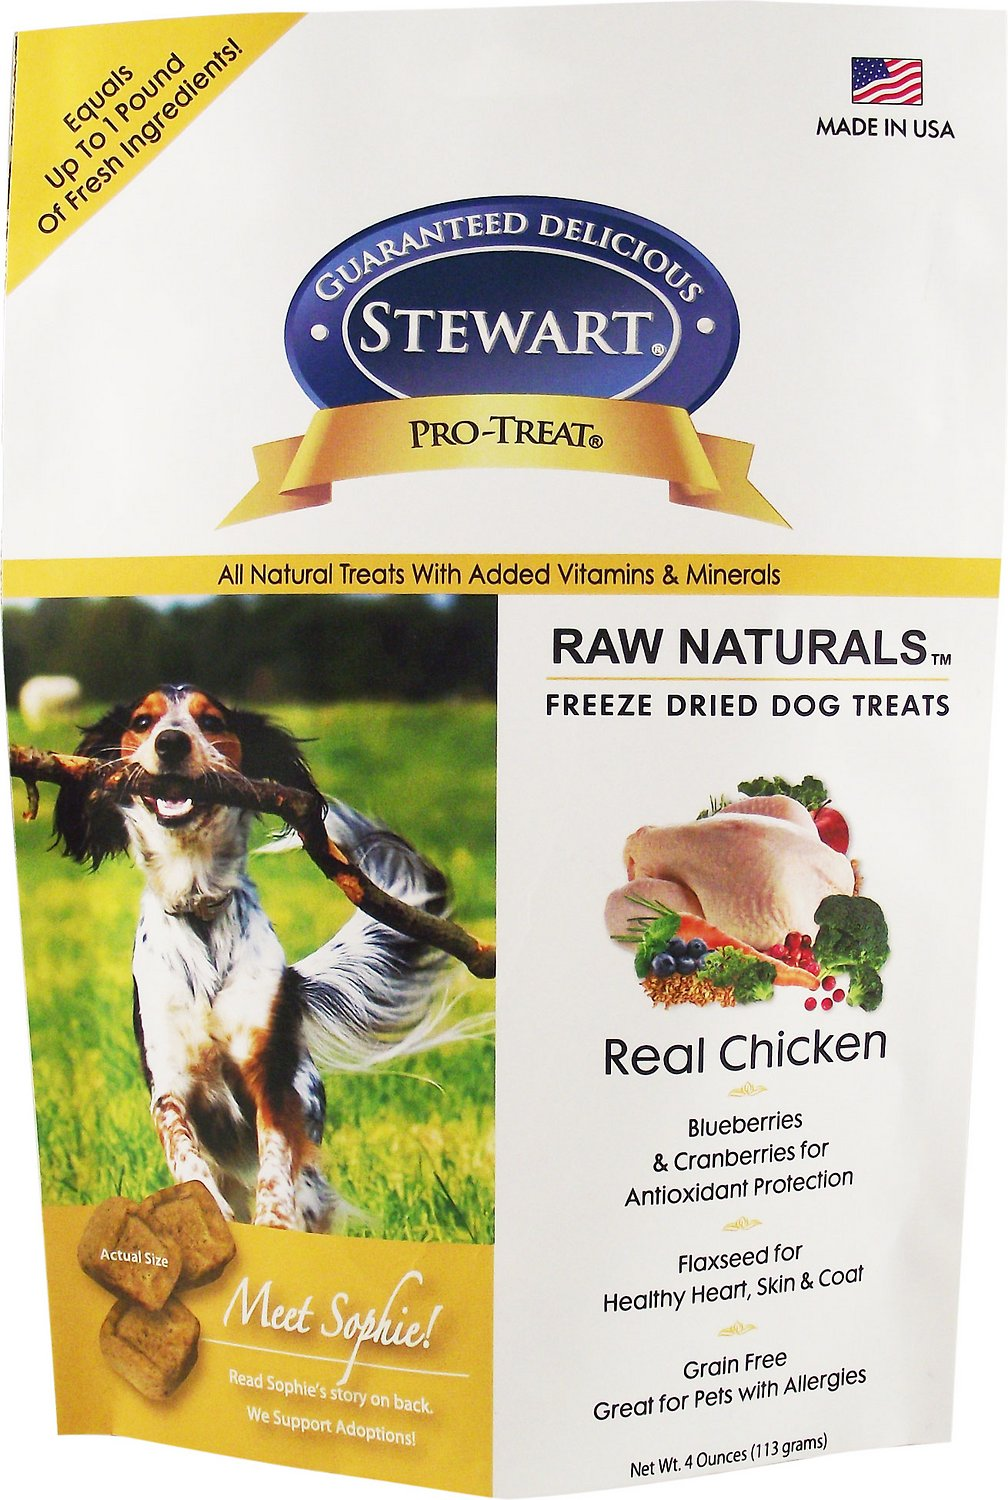 Stewart Pro Treat Raw Naturals